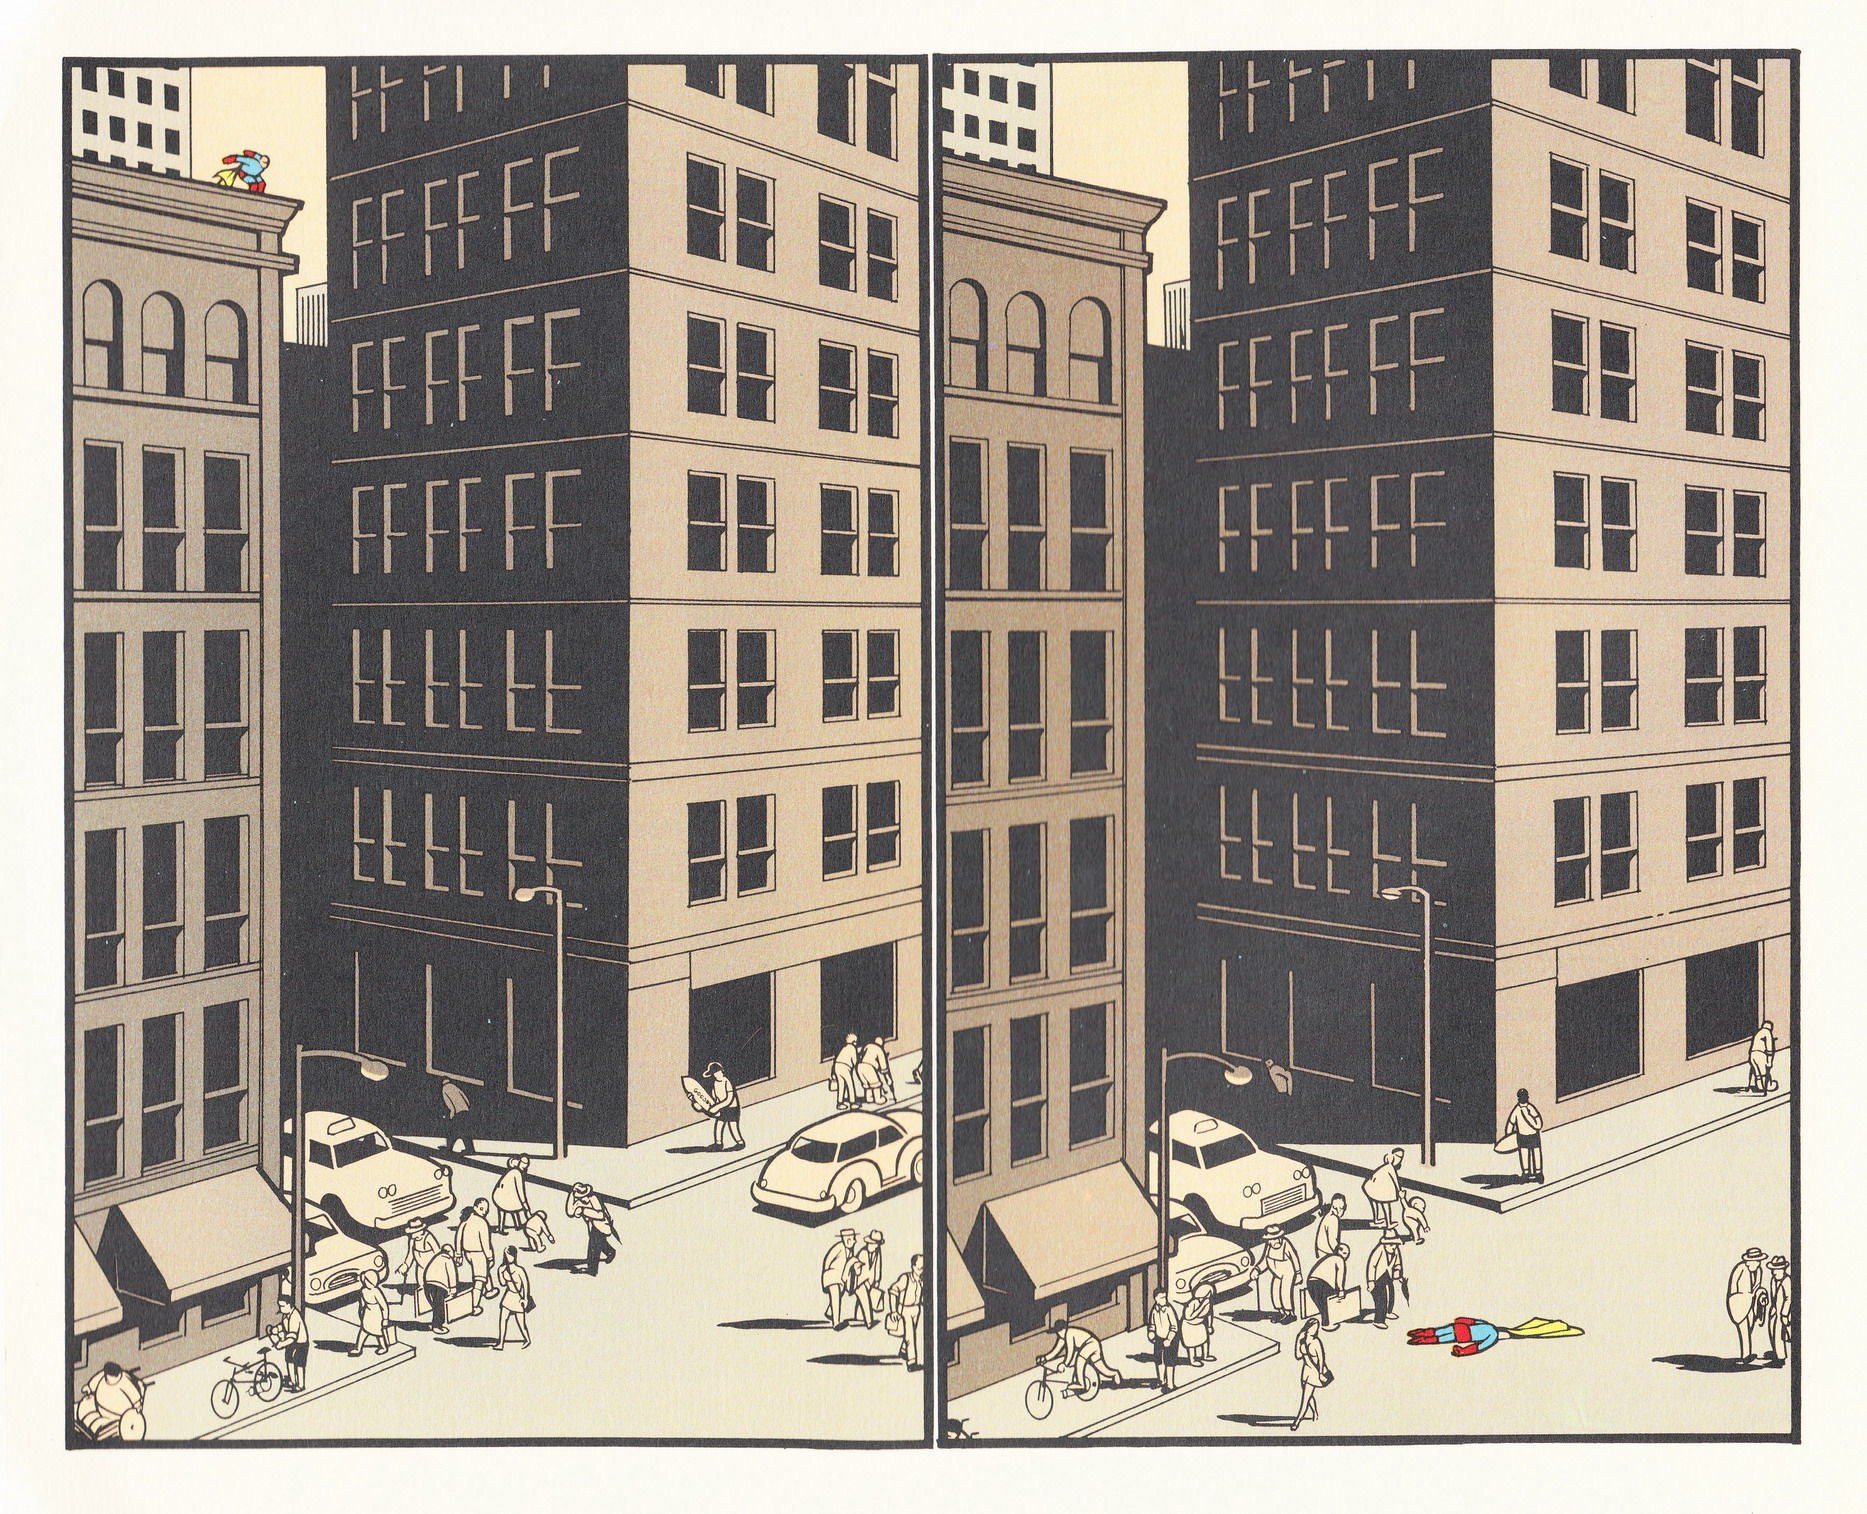 © Chris Ware, Jimmy Corrigan (Pantheon, 2000)